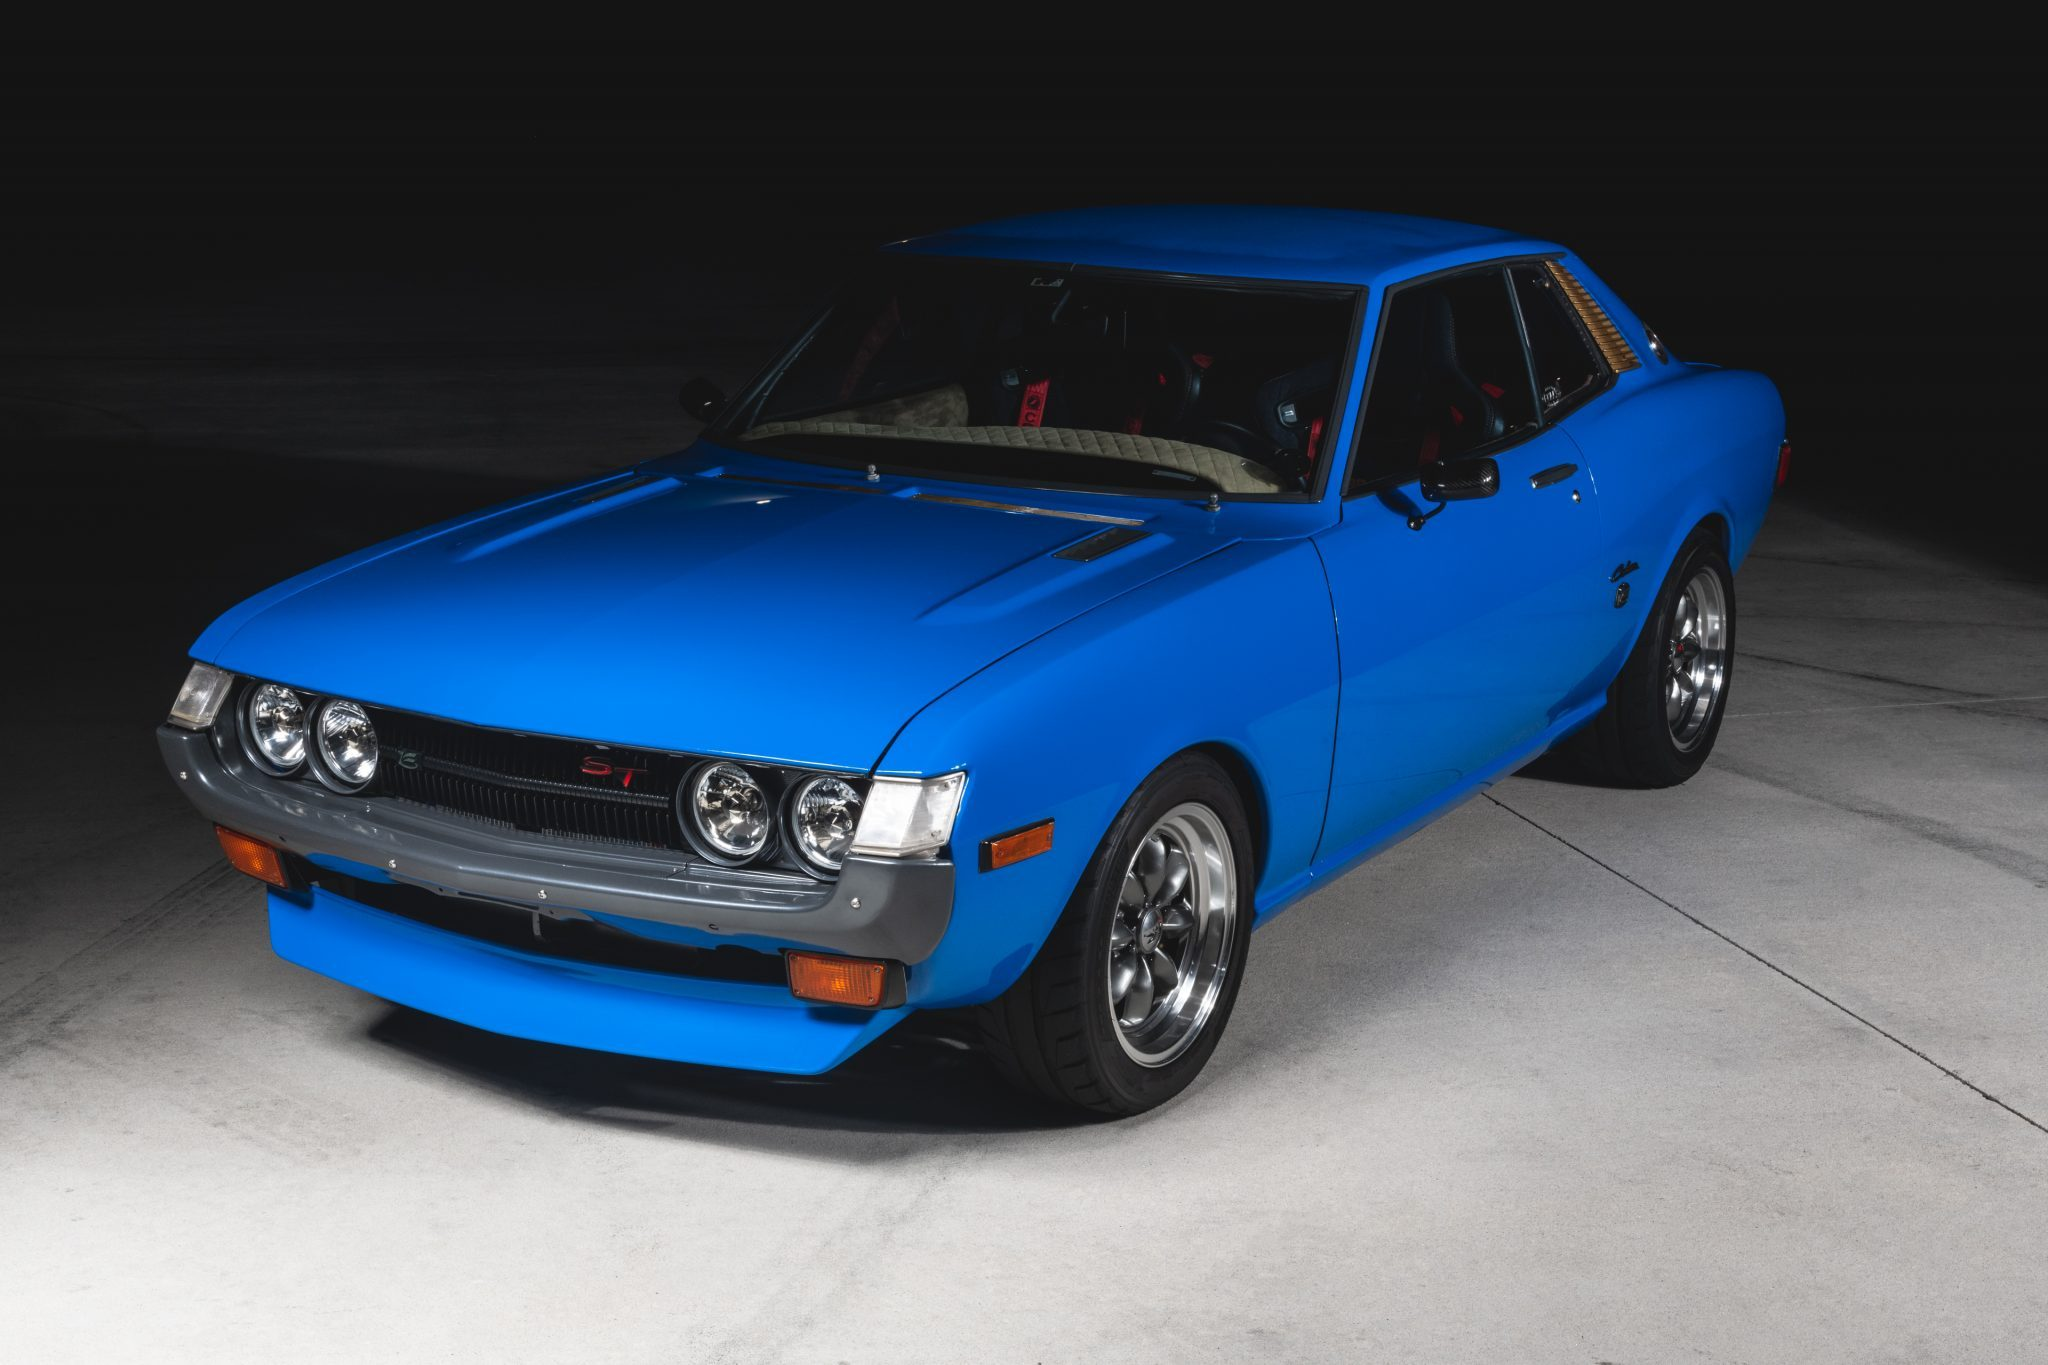 A recent Bring a Trailer ad is offering a 47-year-old Toyota Celica coupe for sale with barely 1,000 miles (1,600 km) of use since restoration. Spare parts, tools, a record and build details are included with the lot.